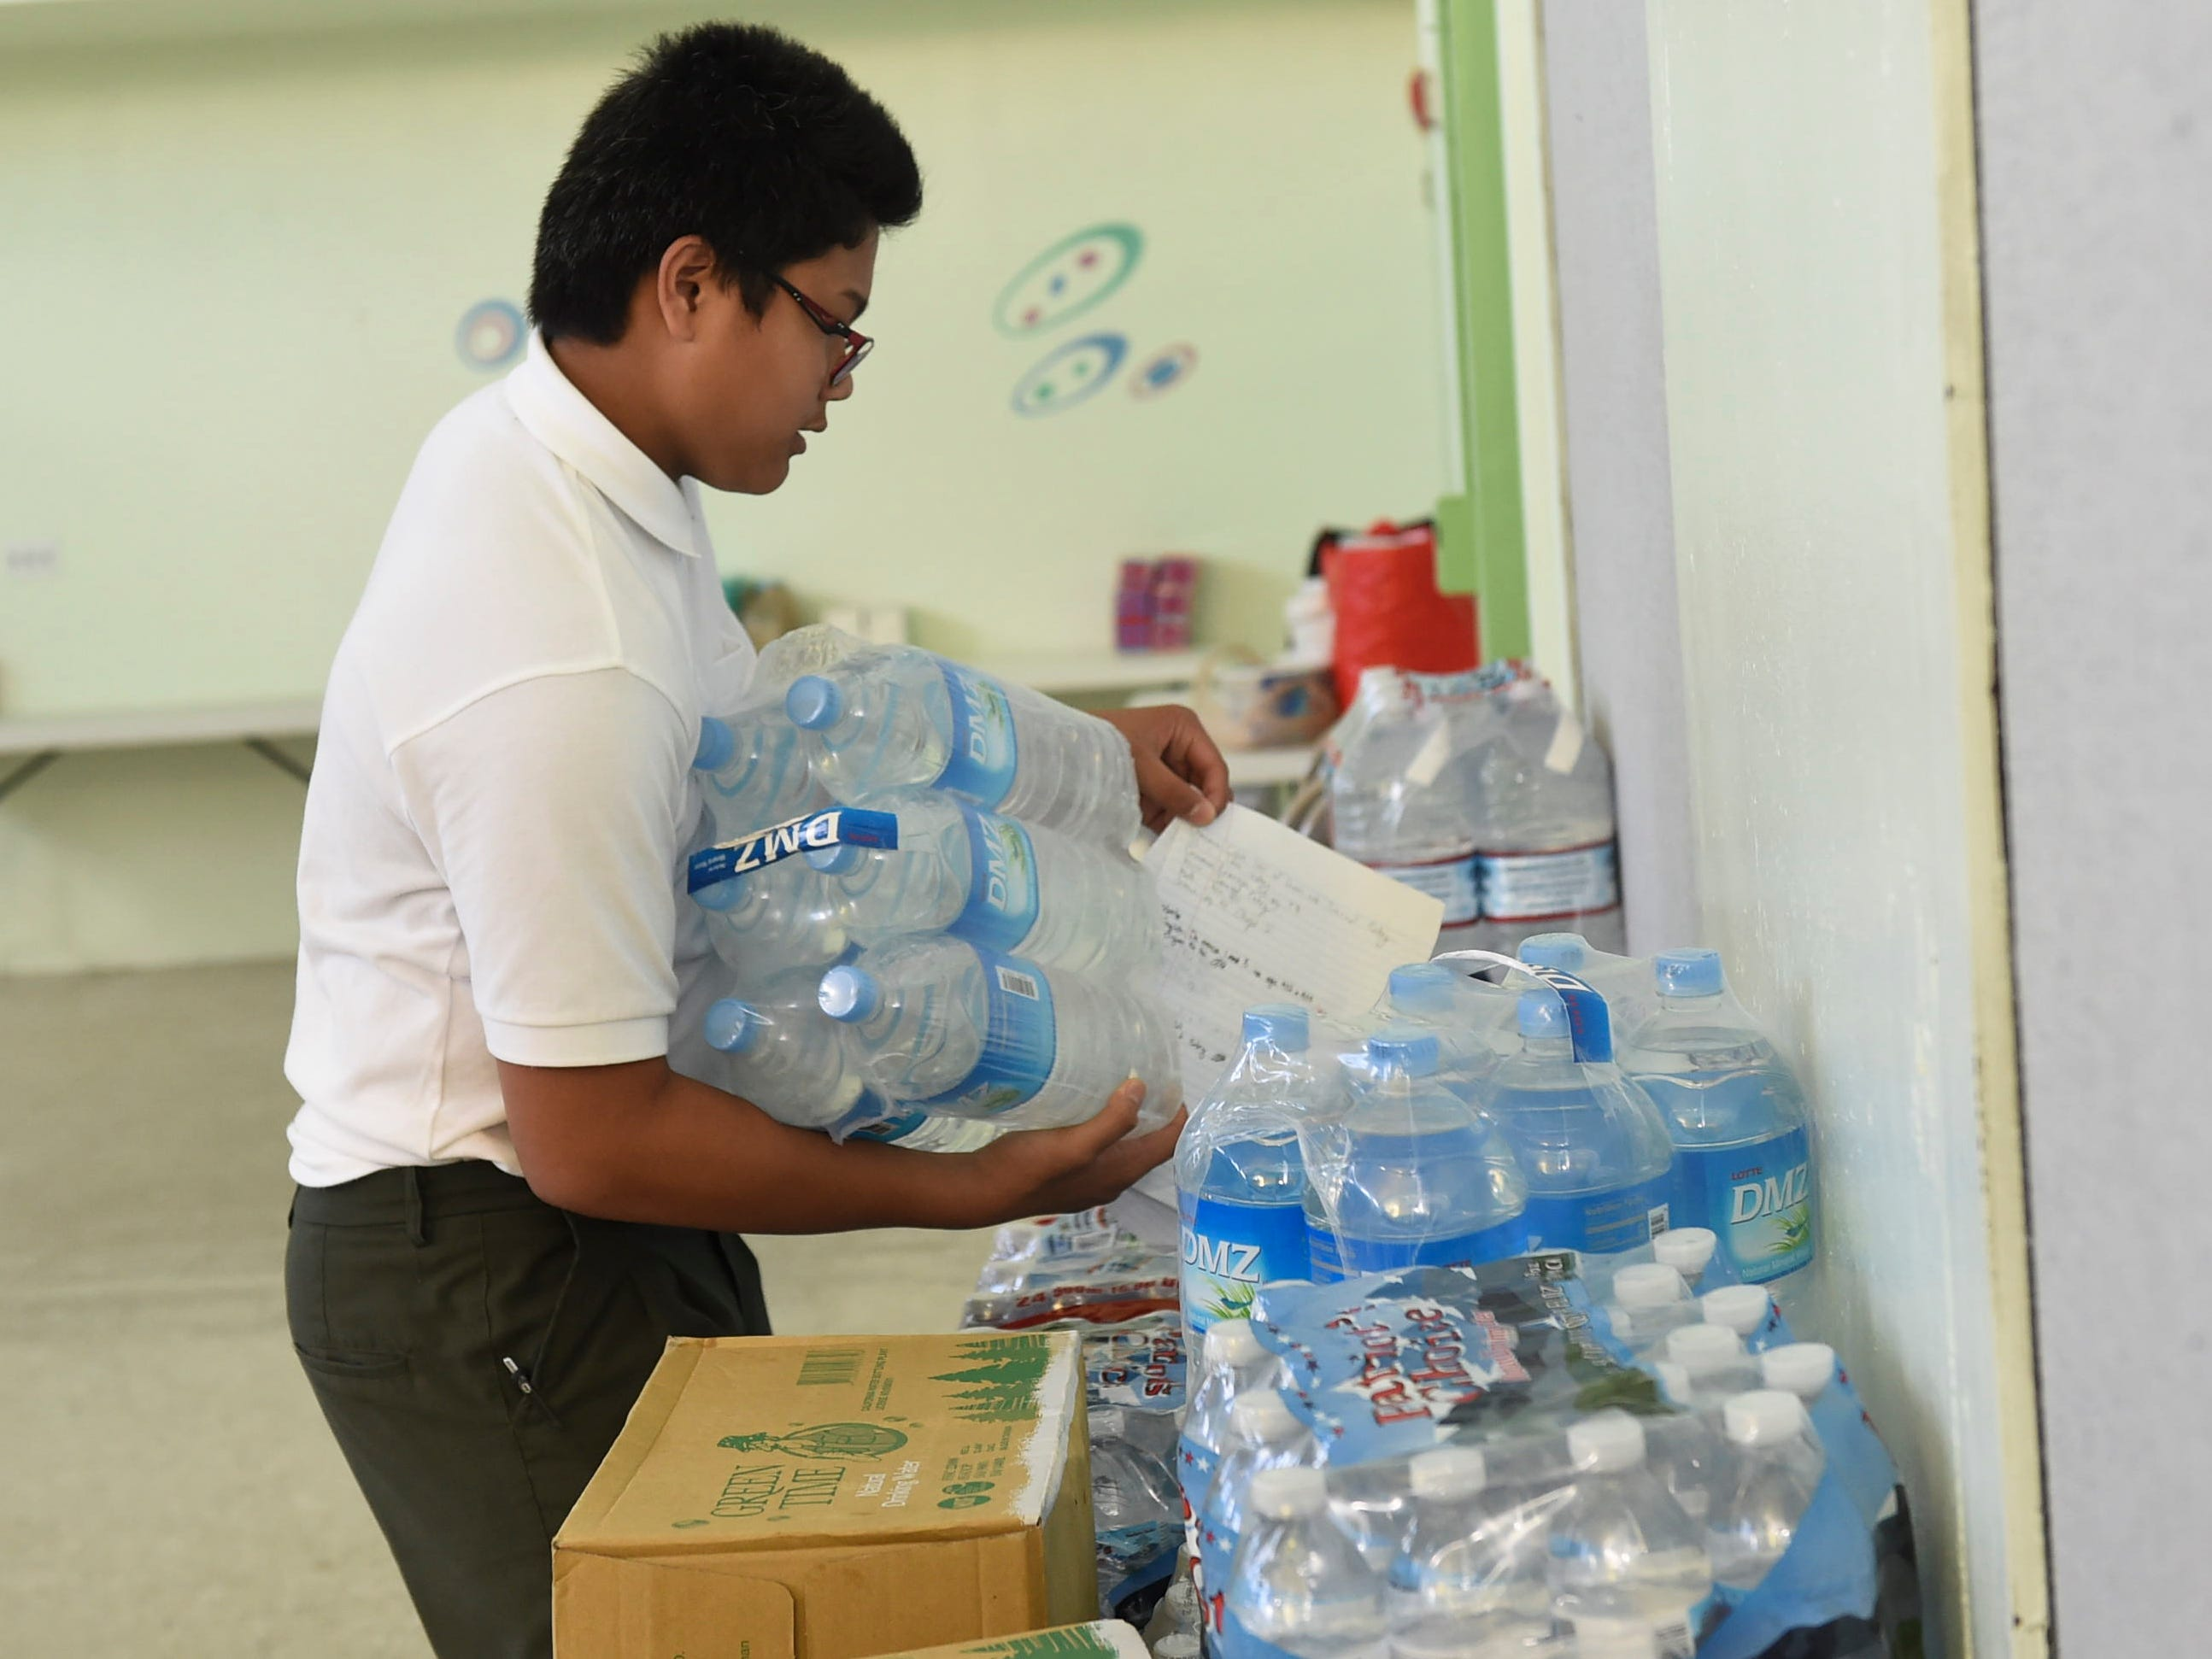 San Vicente Catholic School student Brendon C. Santos Cellona, 13, stacks a case of bottled water for a Super Typhoon Yutu relief effort at the San Vicente Catholic School campus, Oct. 29, 2018.